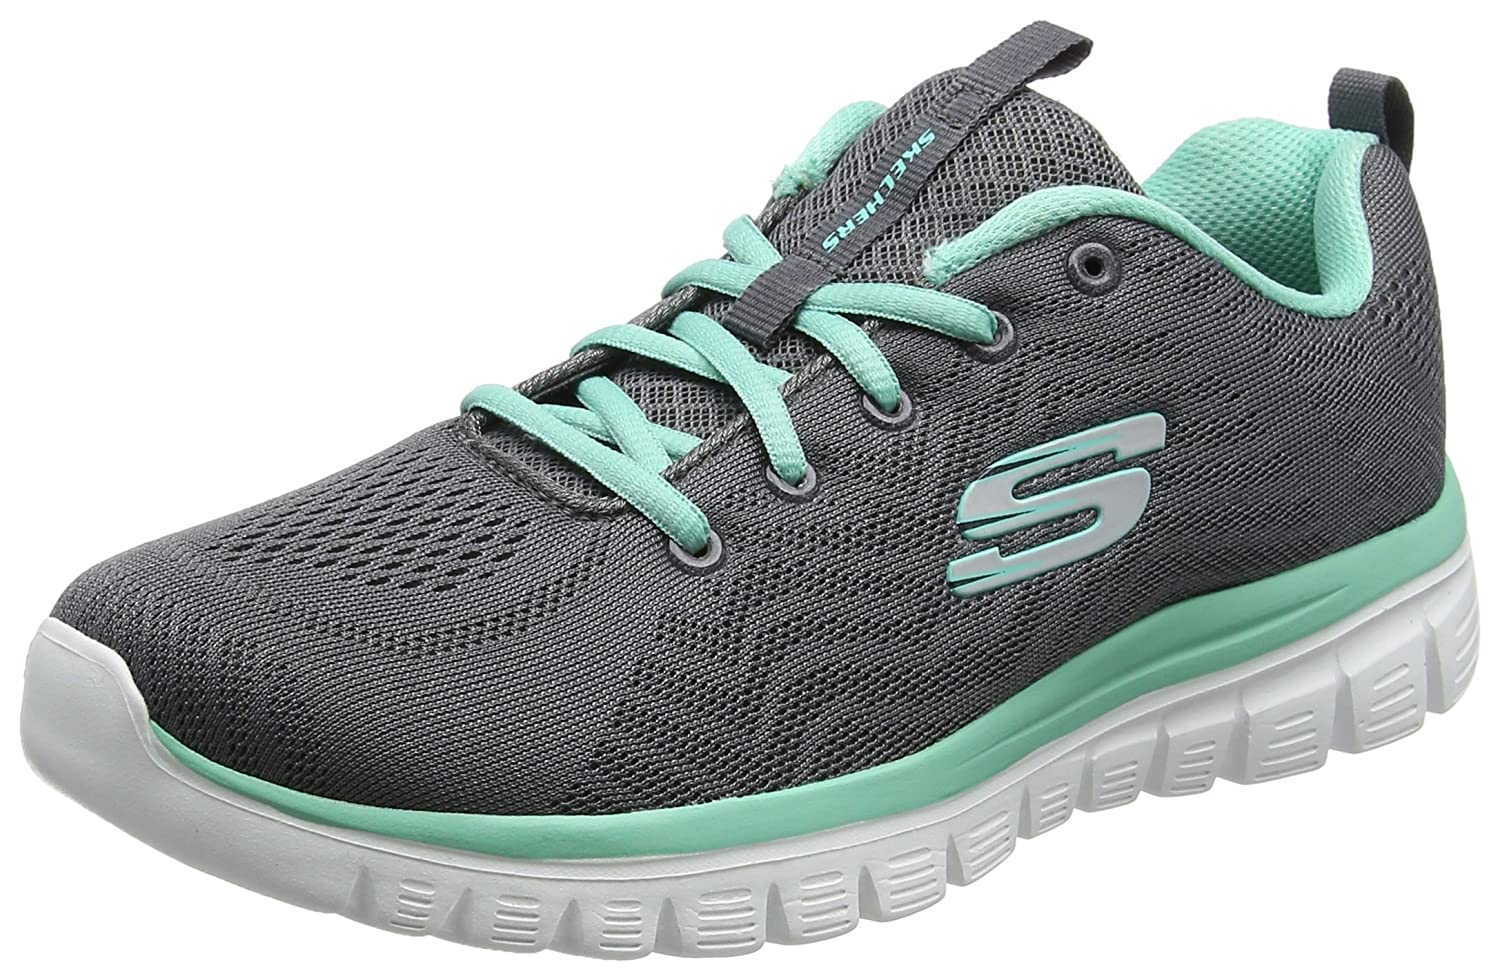 Skechers Damen Graceful - Get Connected Turnschuhe